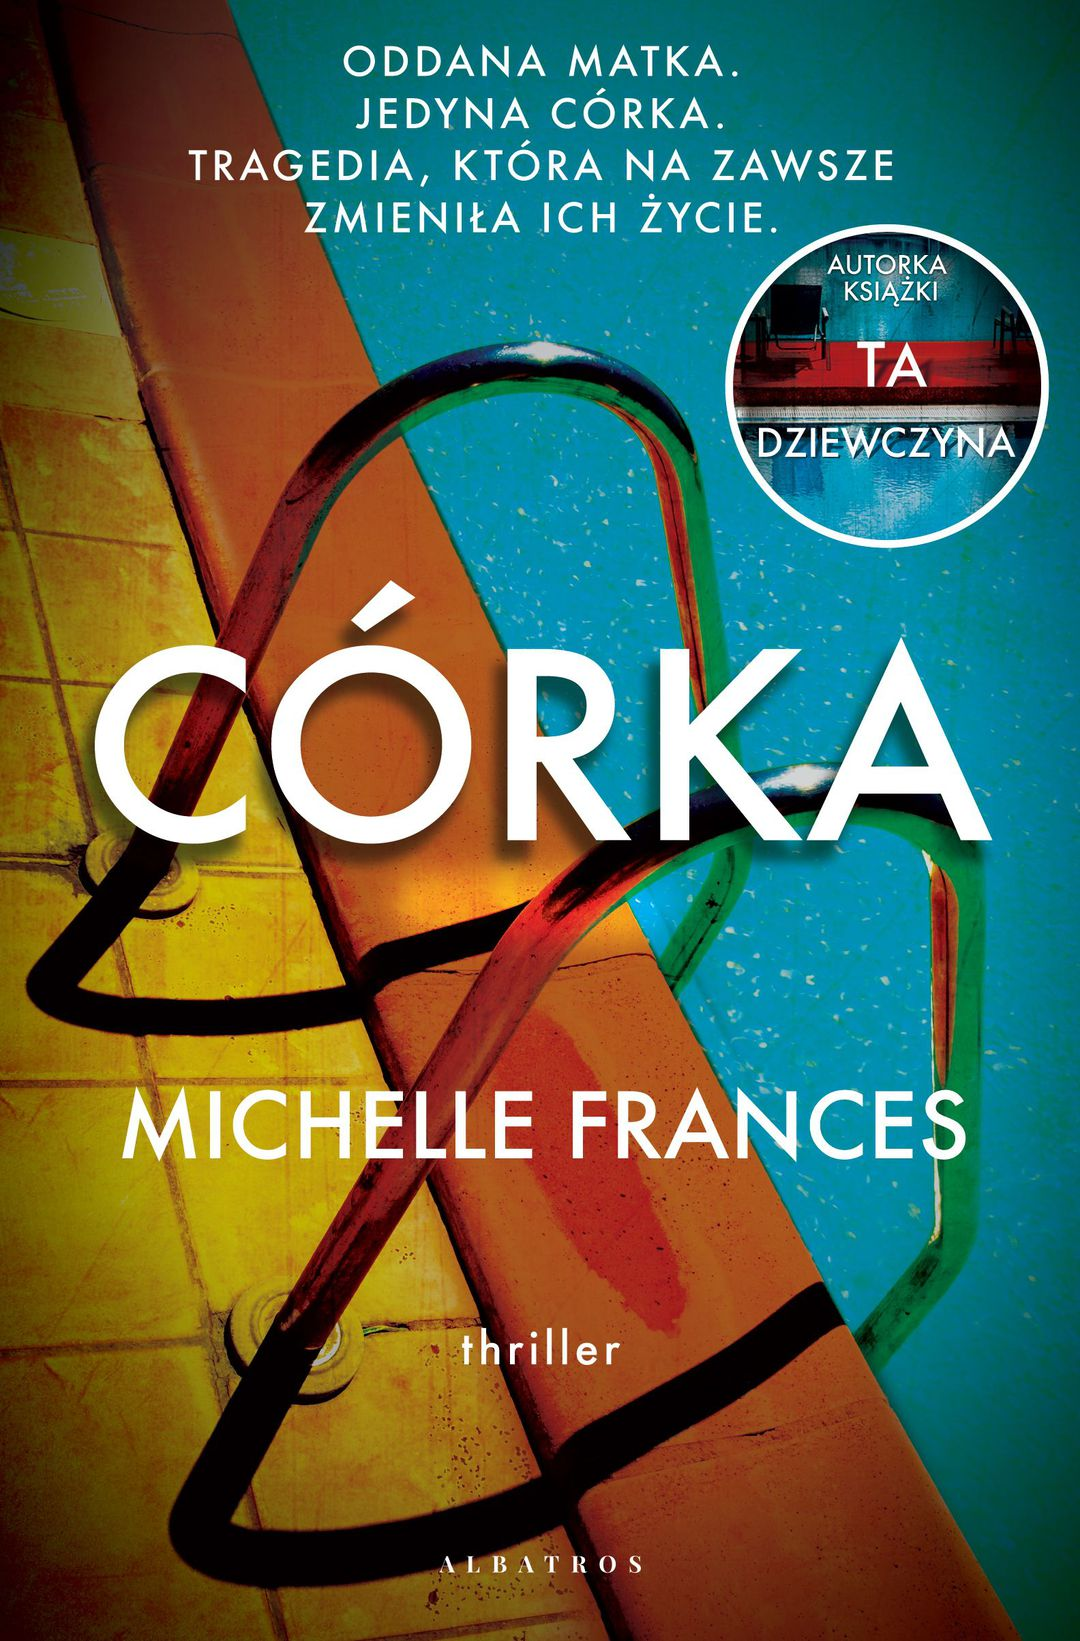 Francess Michelle – Córka